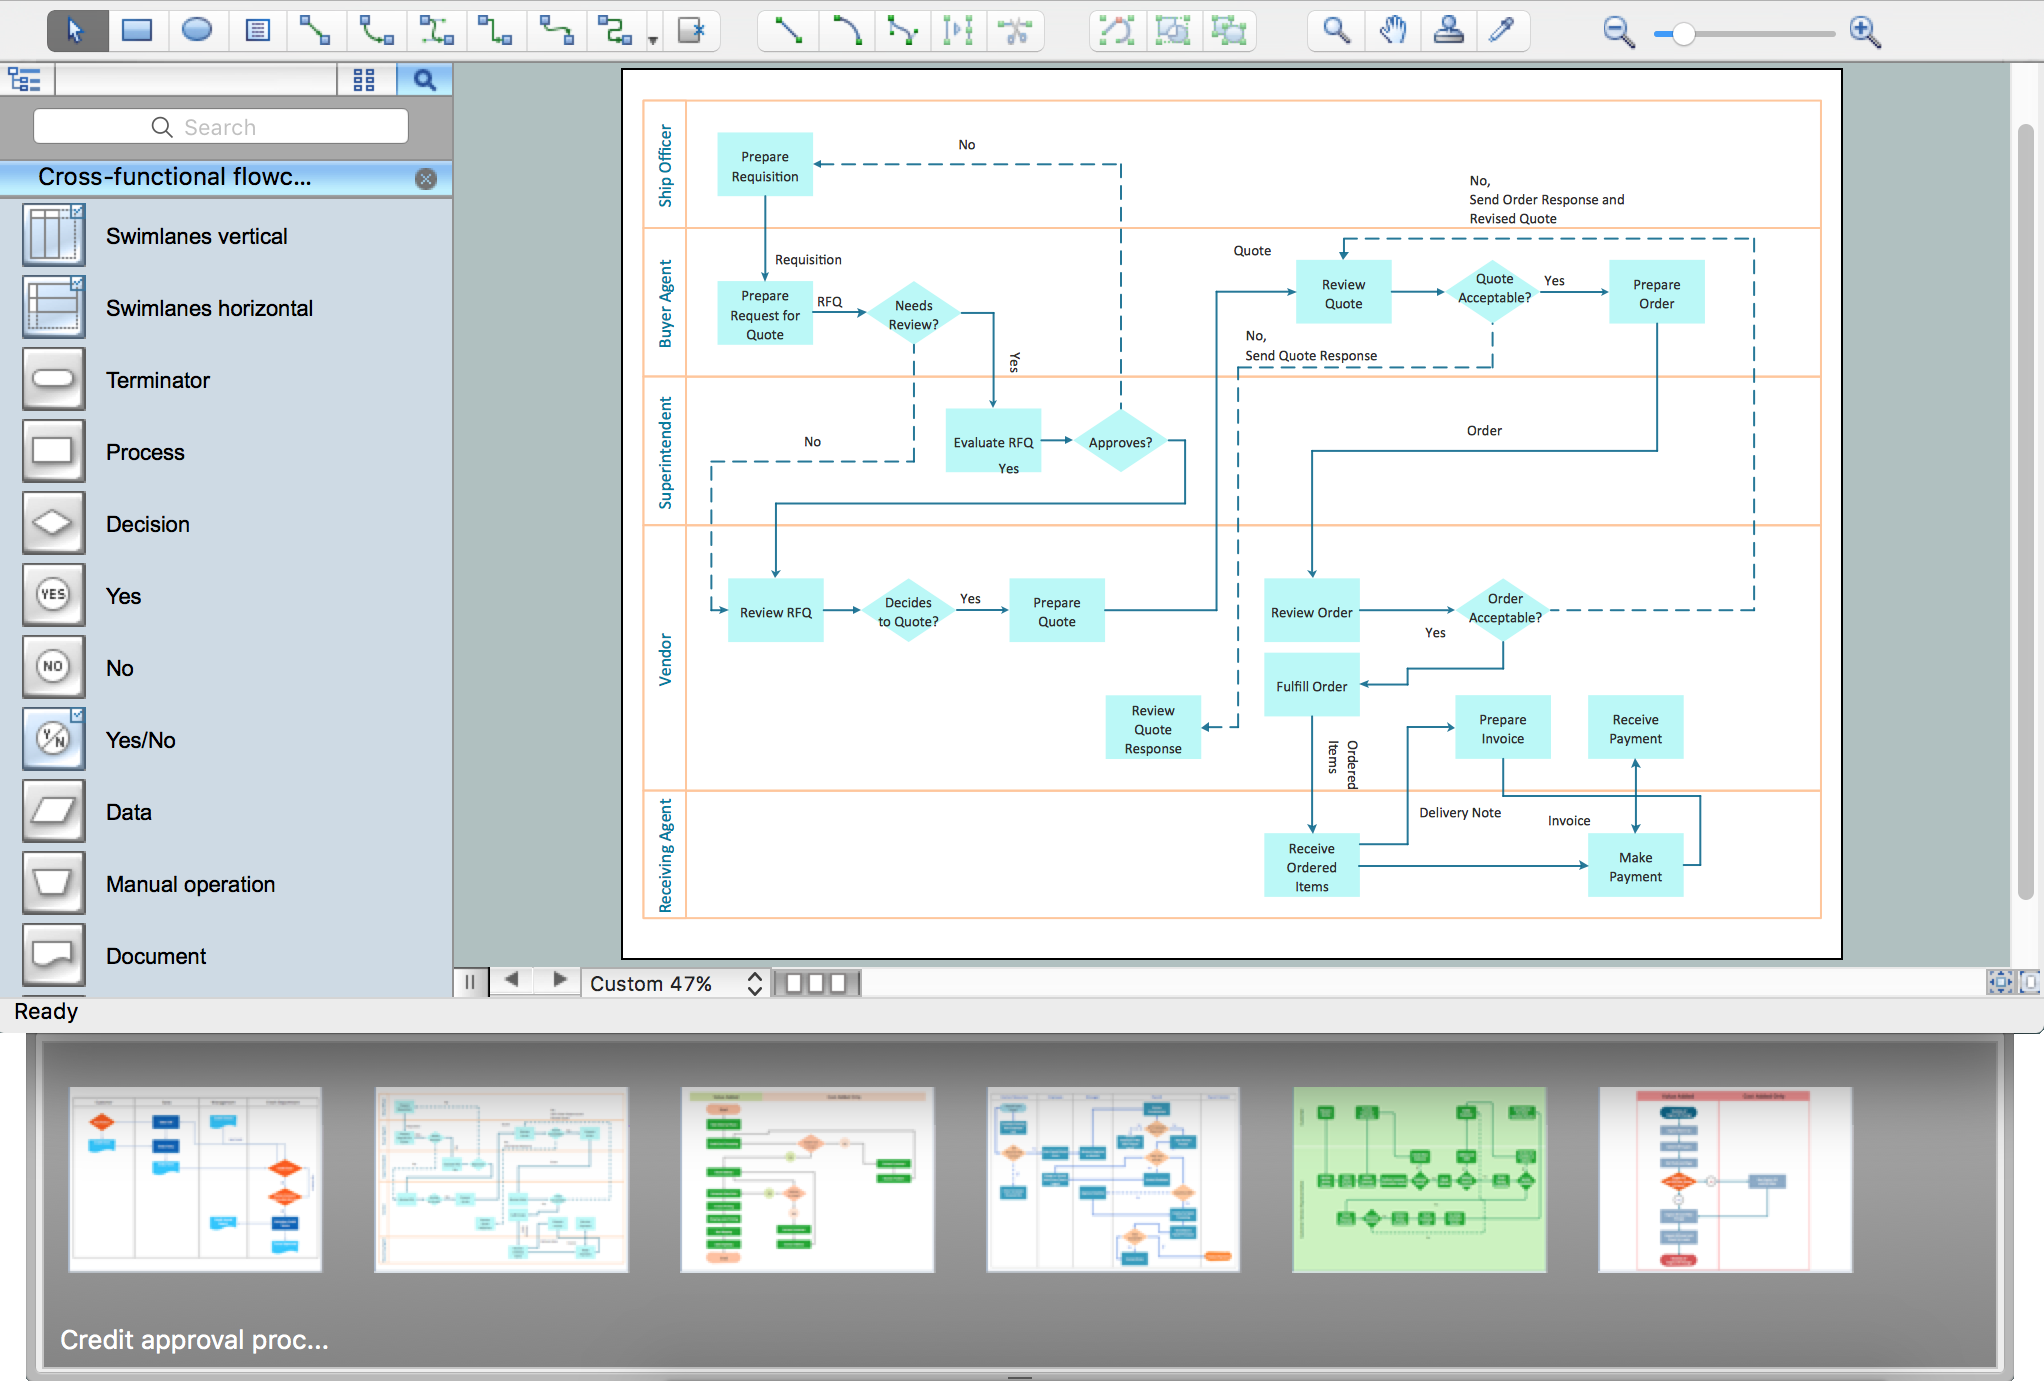 Process Flowchart Flow Chart Example Warehouse Flowchart Diagramming Software For Design Uml Collaboration Diagrams Supermarket Management System Flowchart